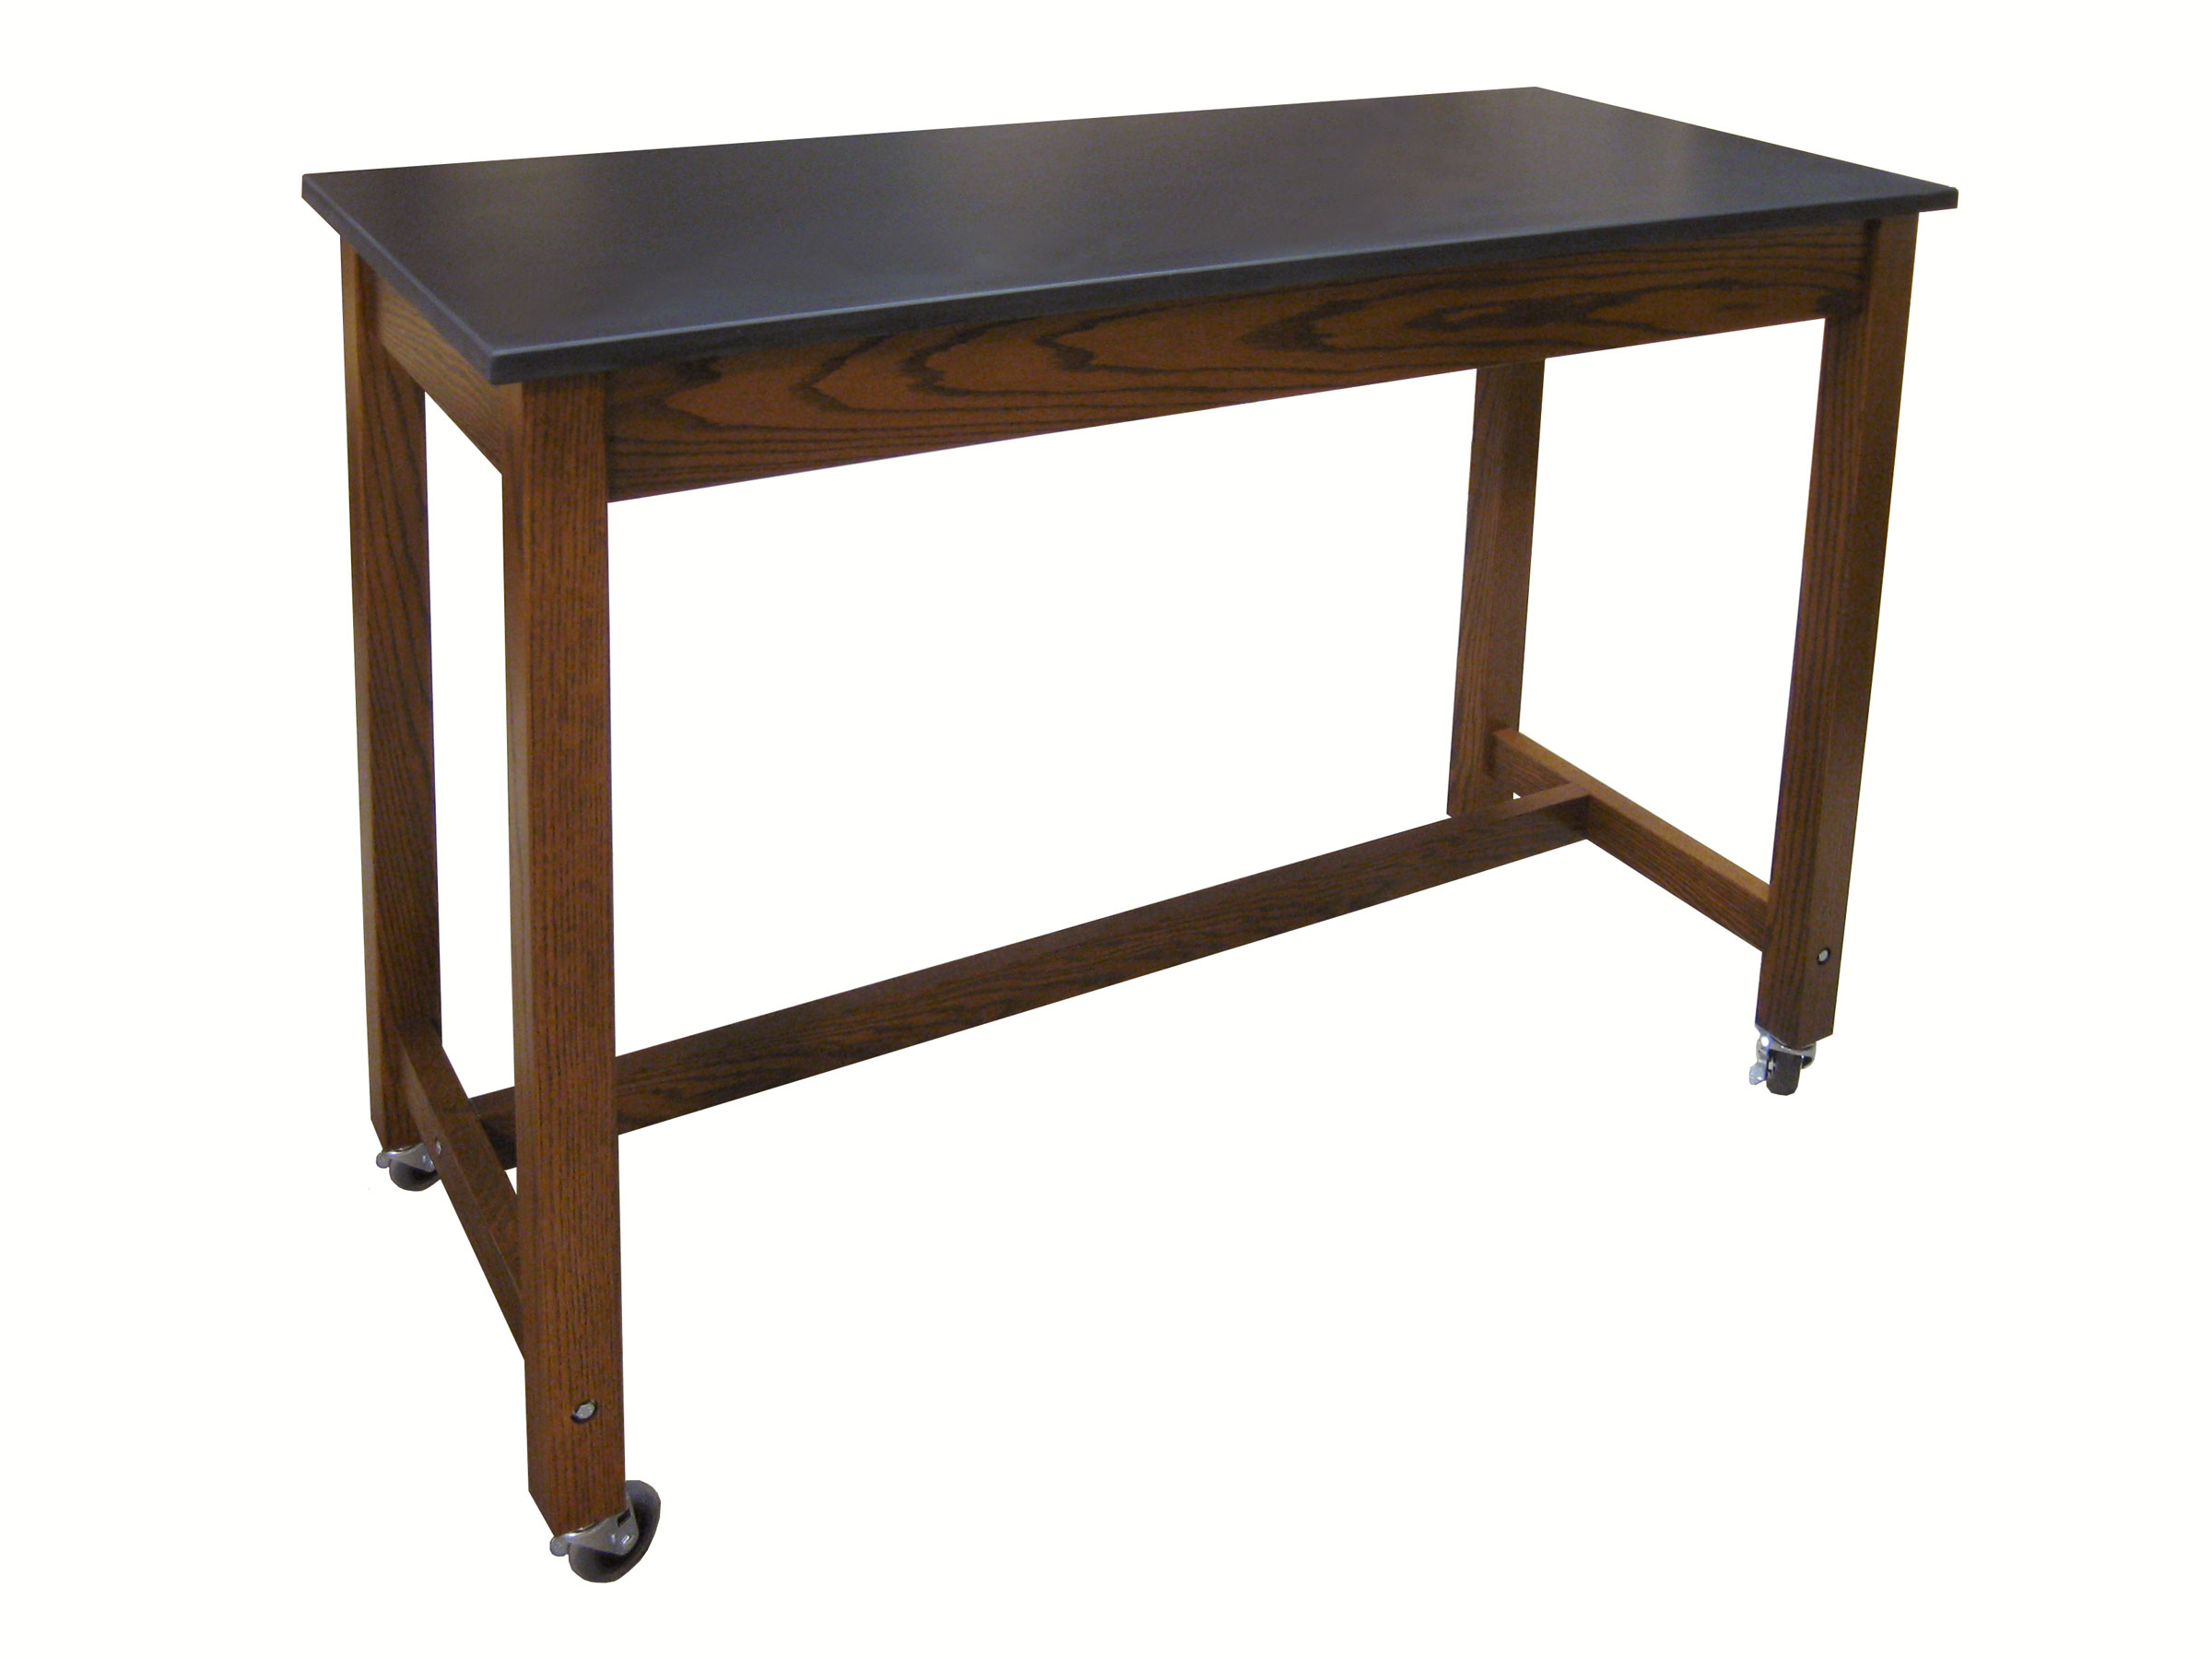 laboratory table School outfitters – get great prices on science tables and lab tables here save on chemical-resistant lab tables, science tables with storage and more.